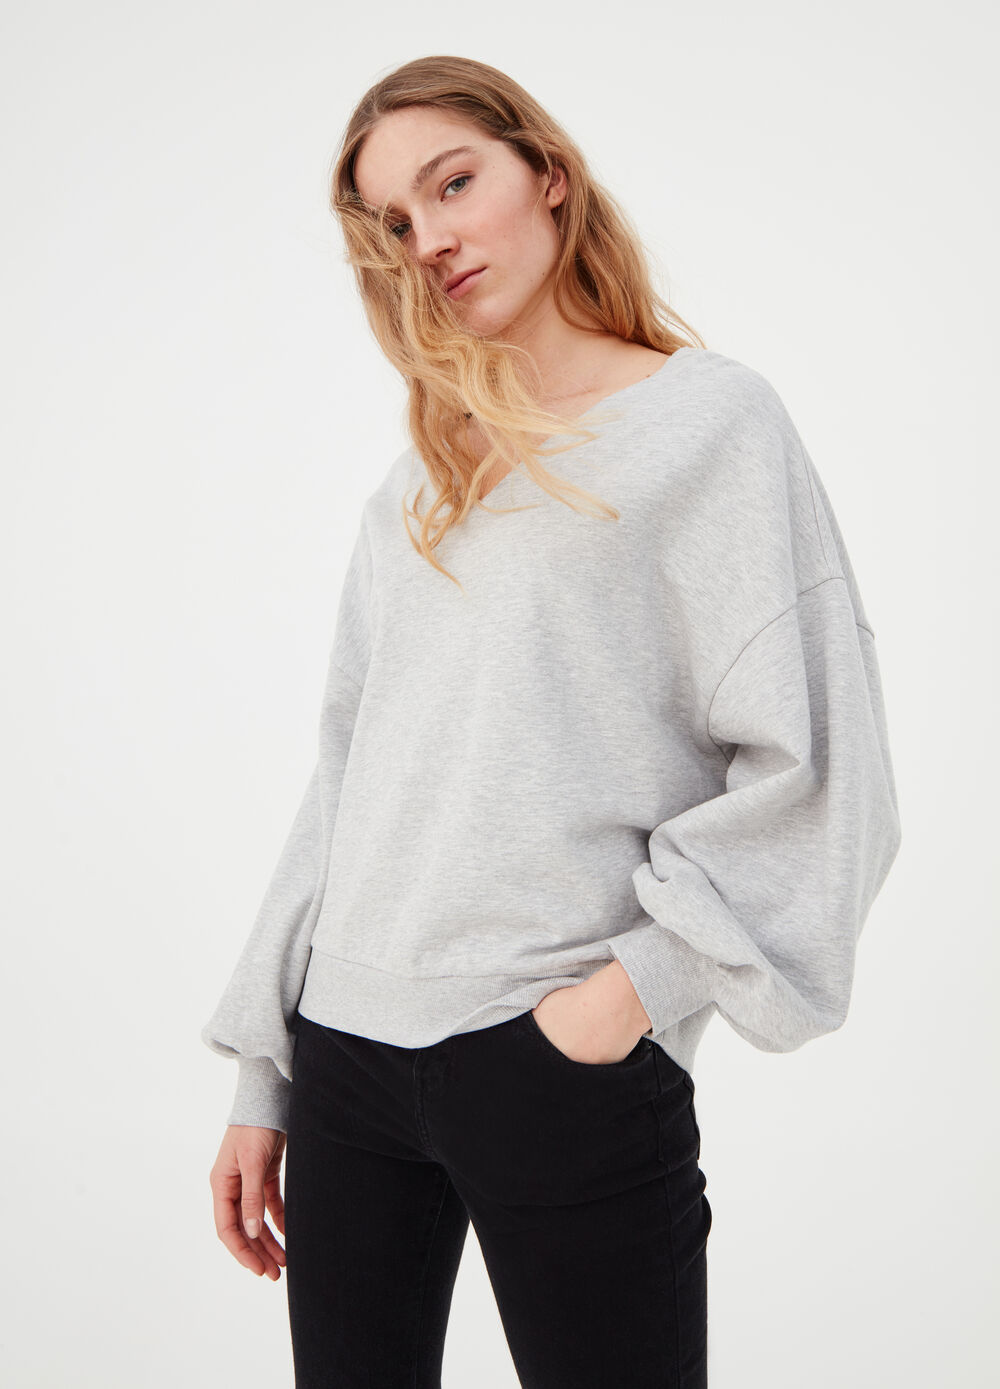 Oversized sweatshirt with puff sleeves